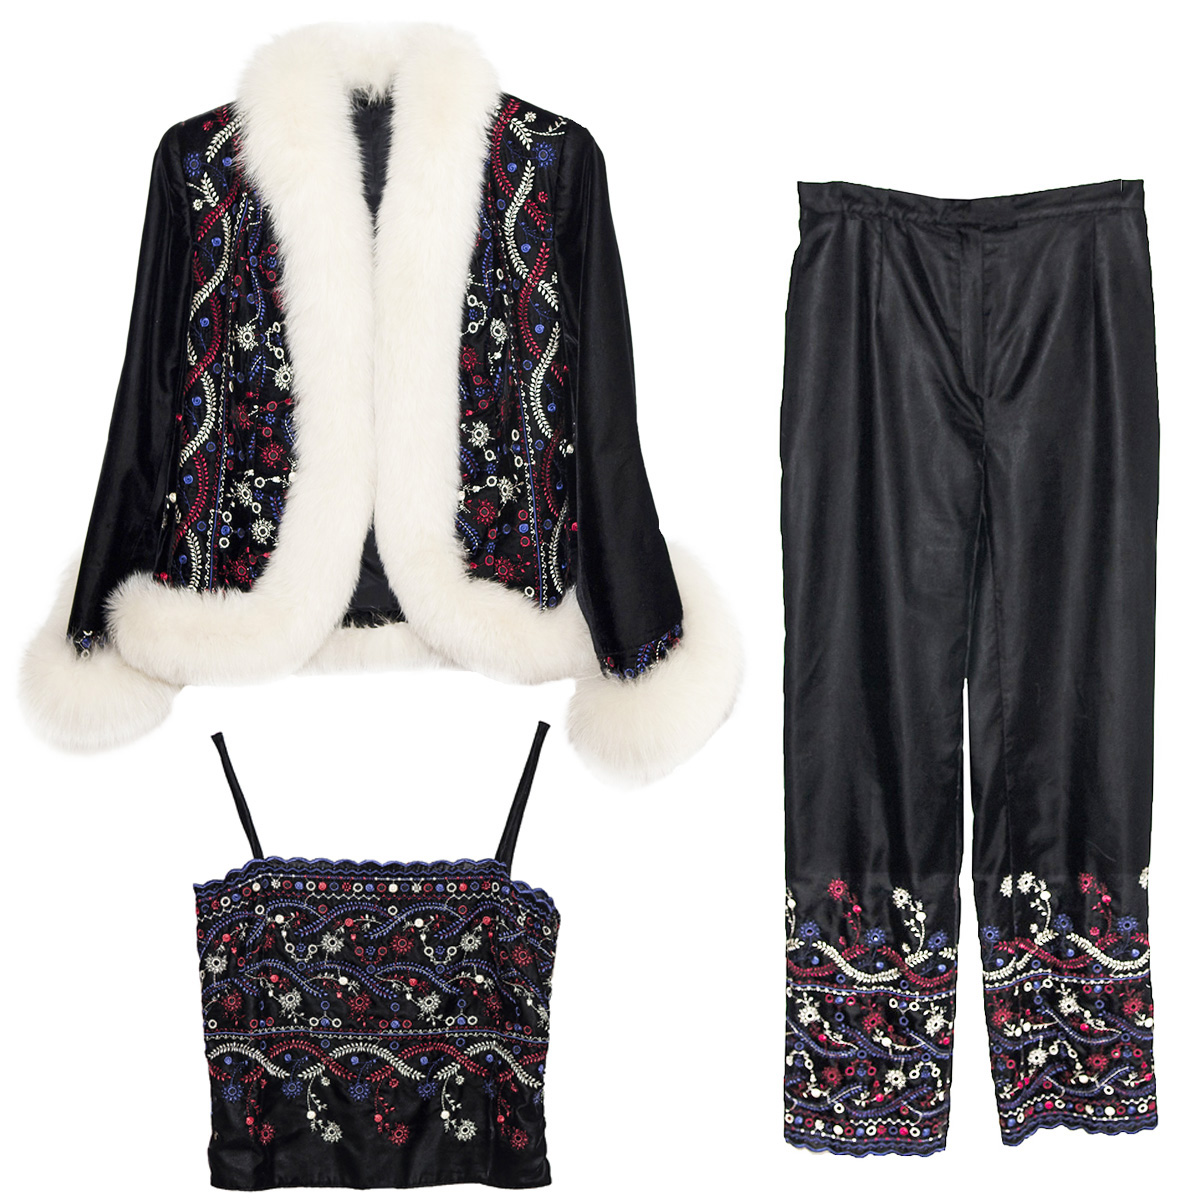 Black Apres Ski top & Pants 4